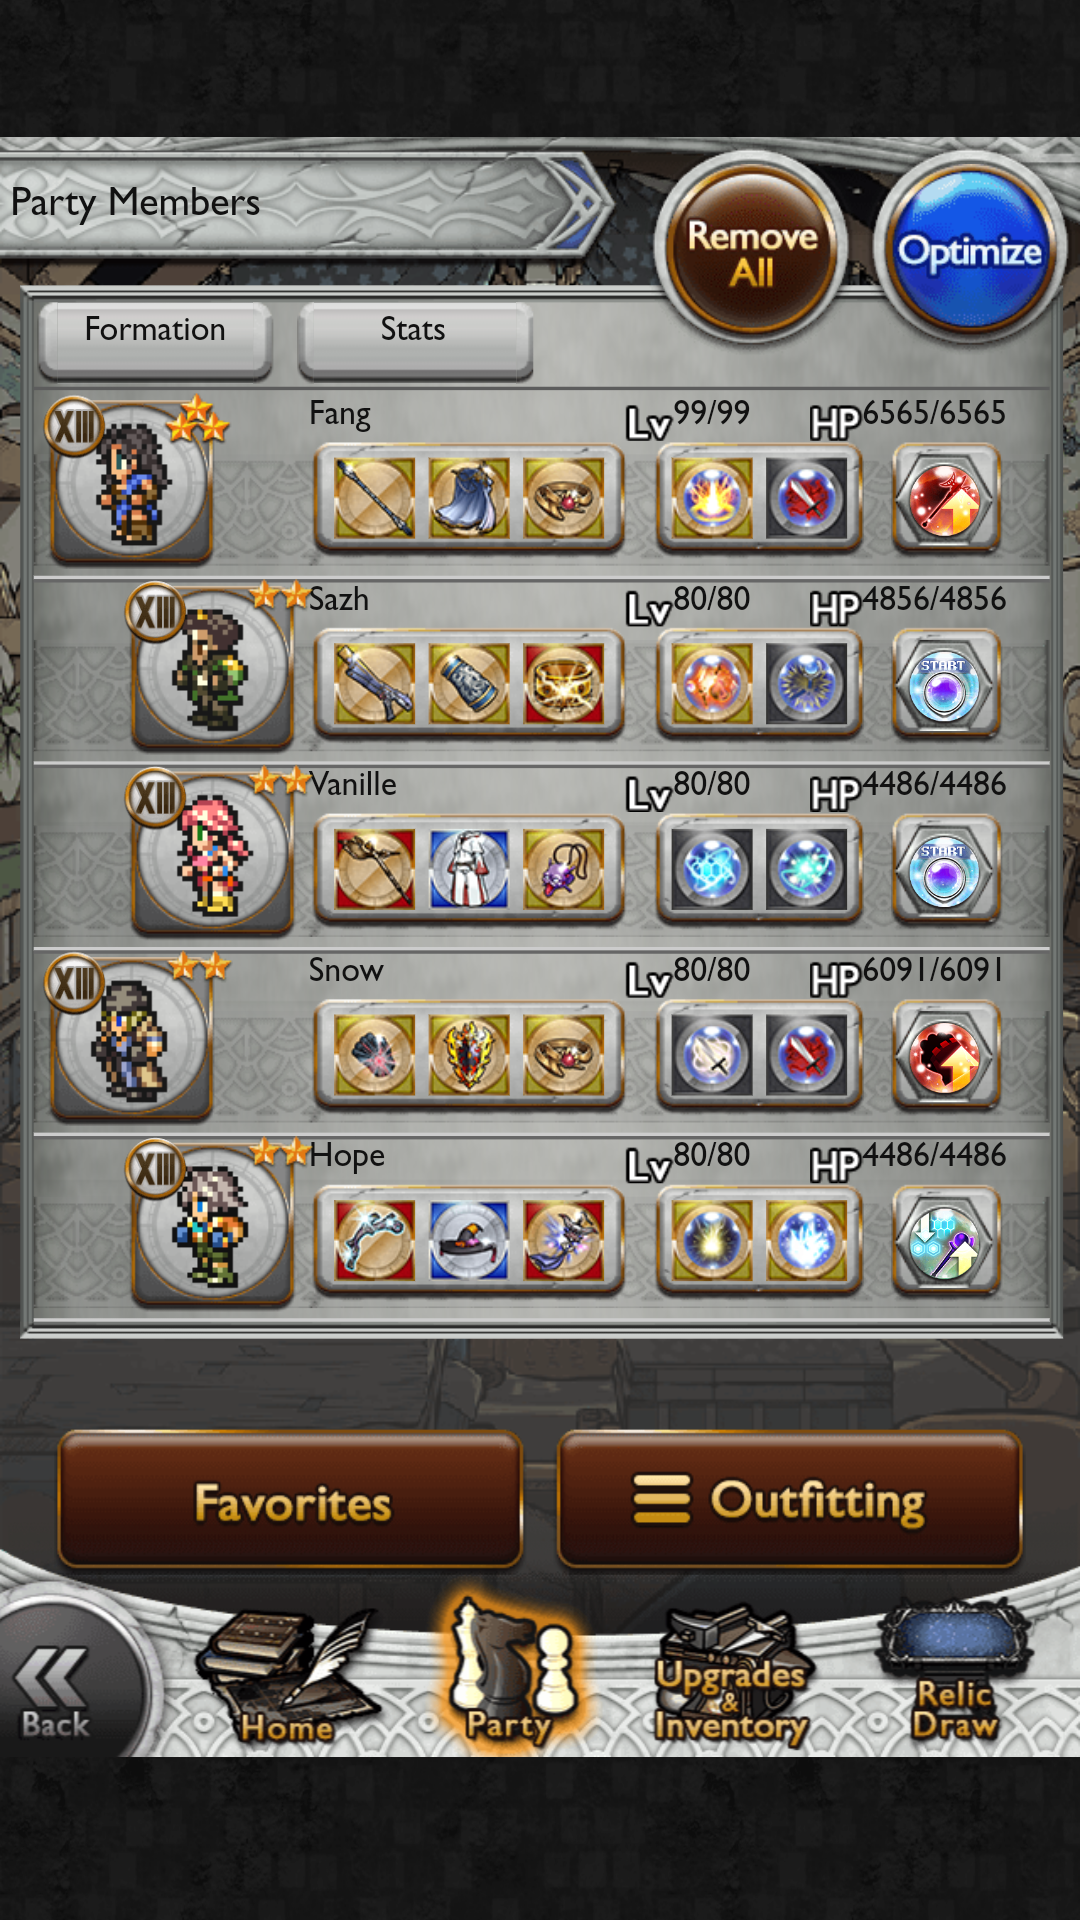 kirin games this capped damage hope once blues meltdown choco-chick last explosive fist seem cant miracle vanille sazh lvl65 prayer glad reason first since with relics done havent lies love ff13 strategies event able ffrk think game when started dust diamond only losing medal snow setup metamorphose